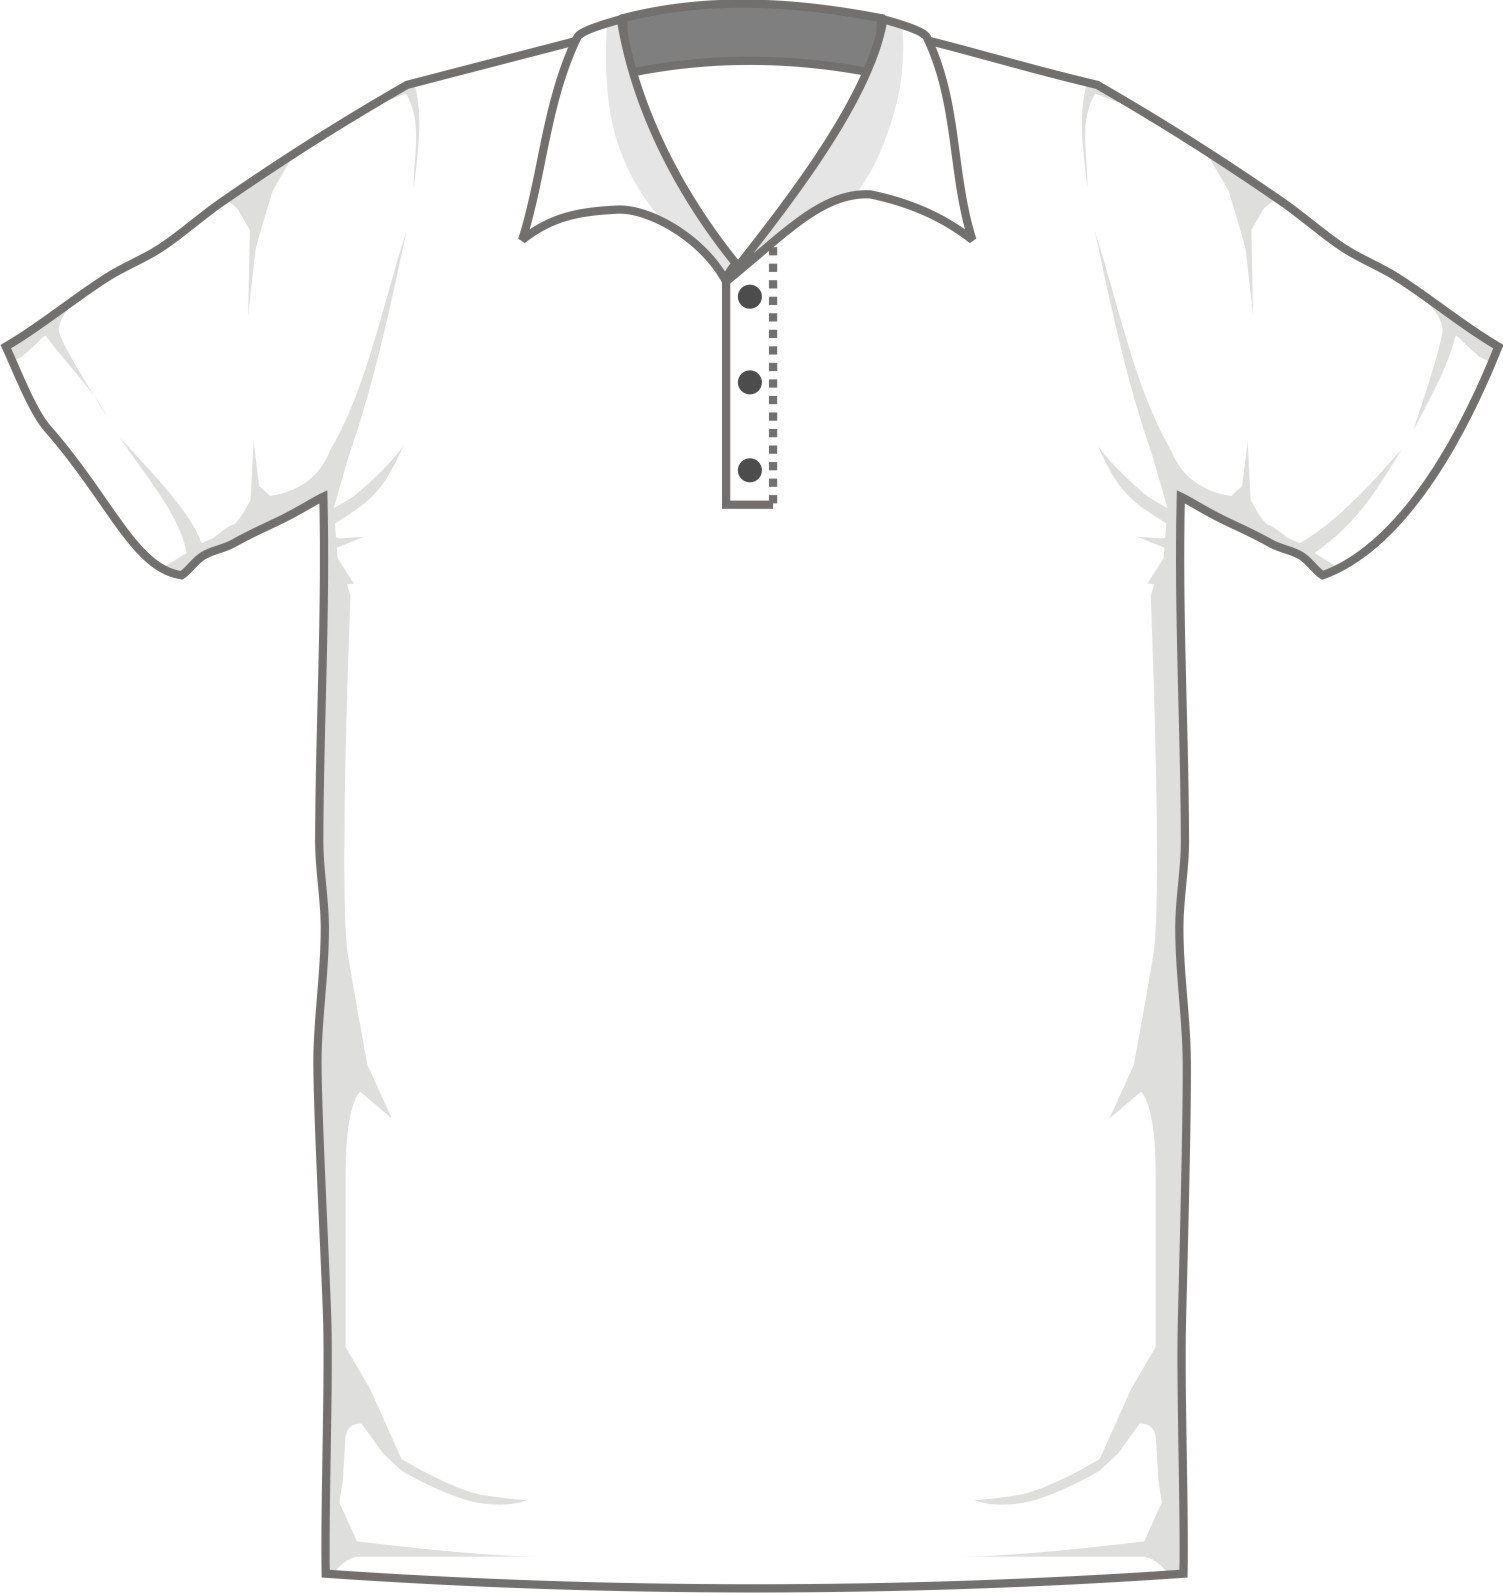 Blank polo t shirt template for Blank t shirt design template